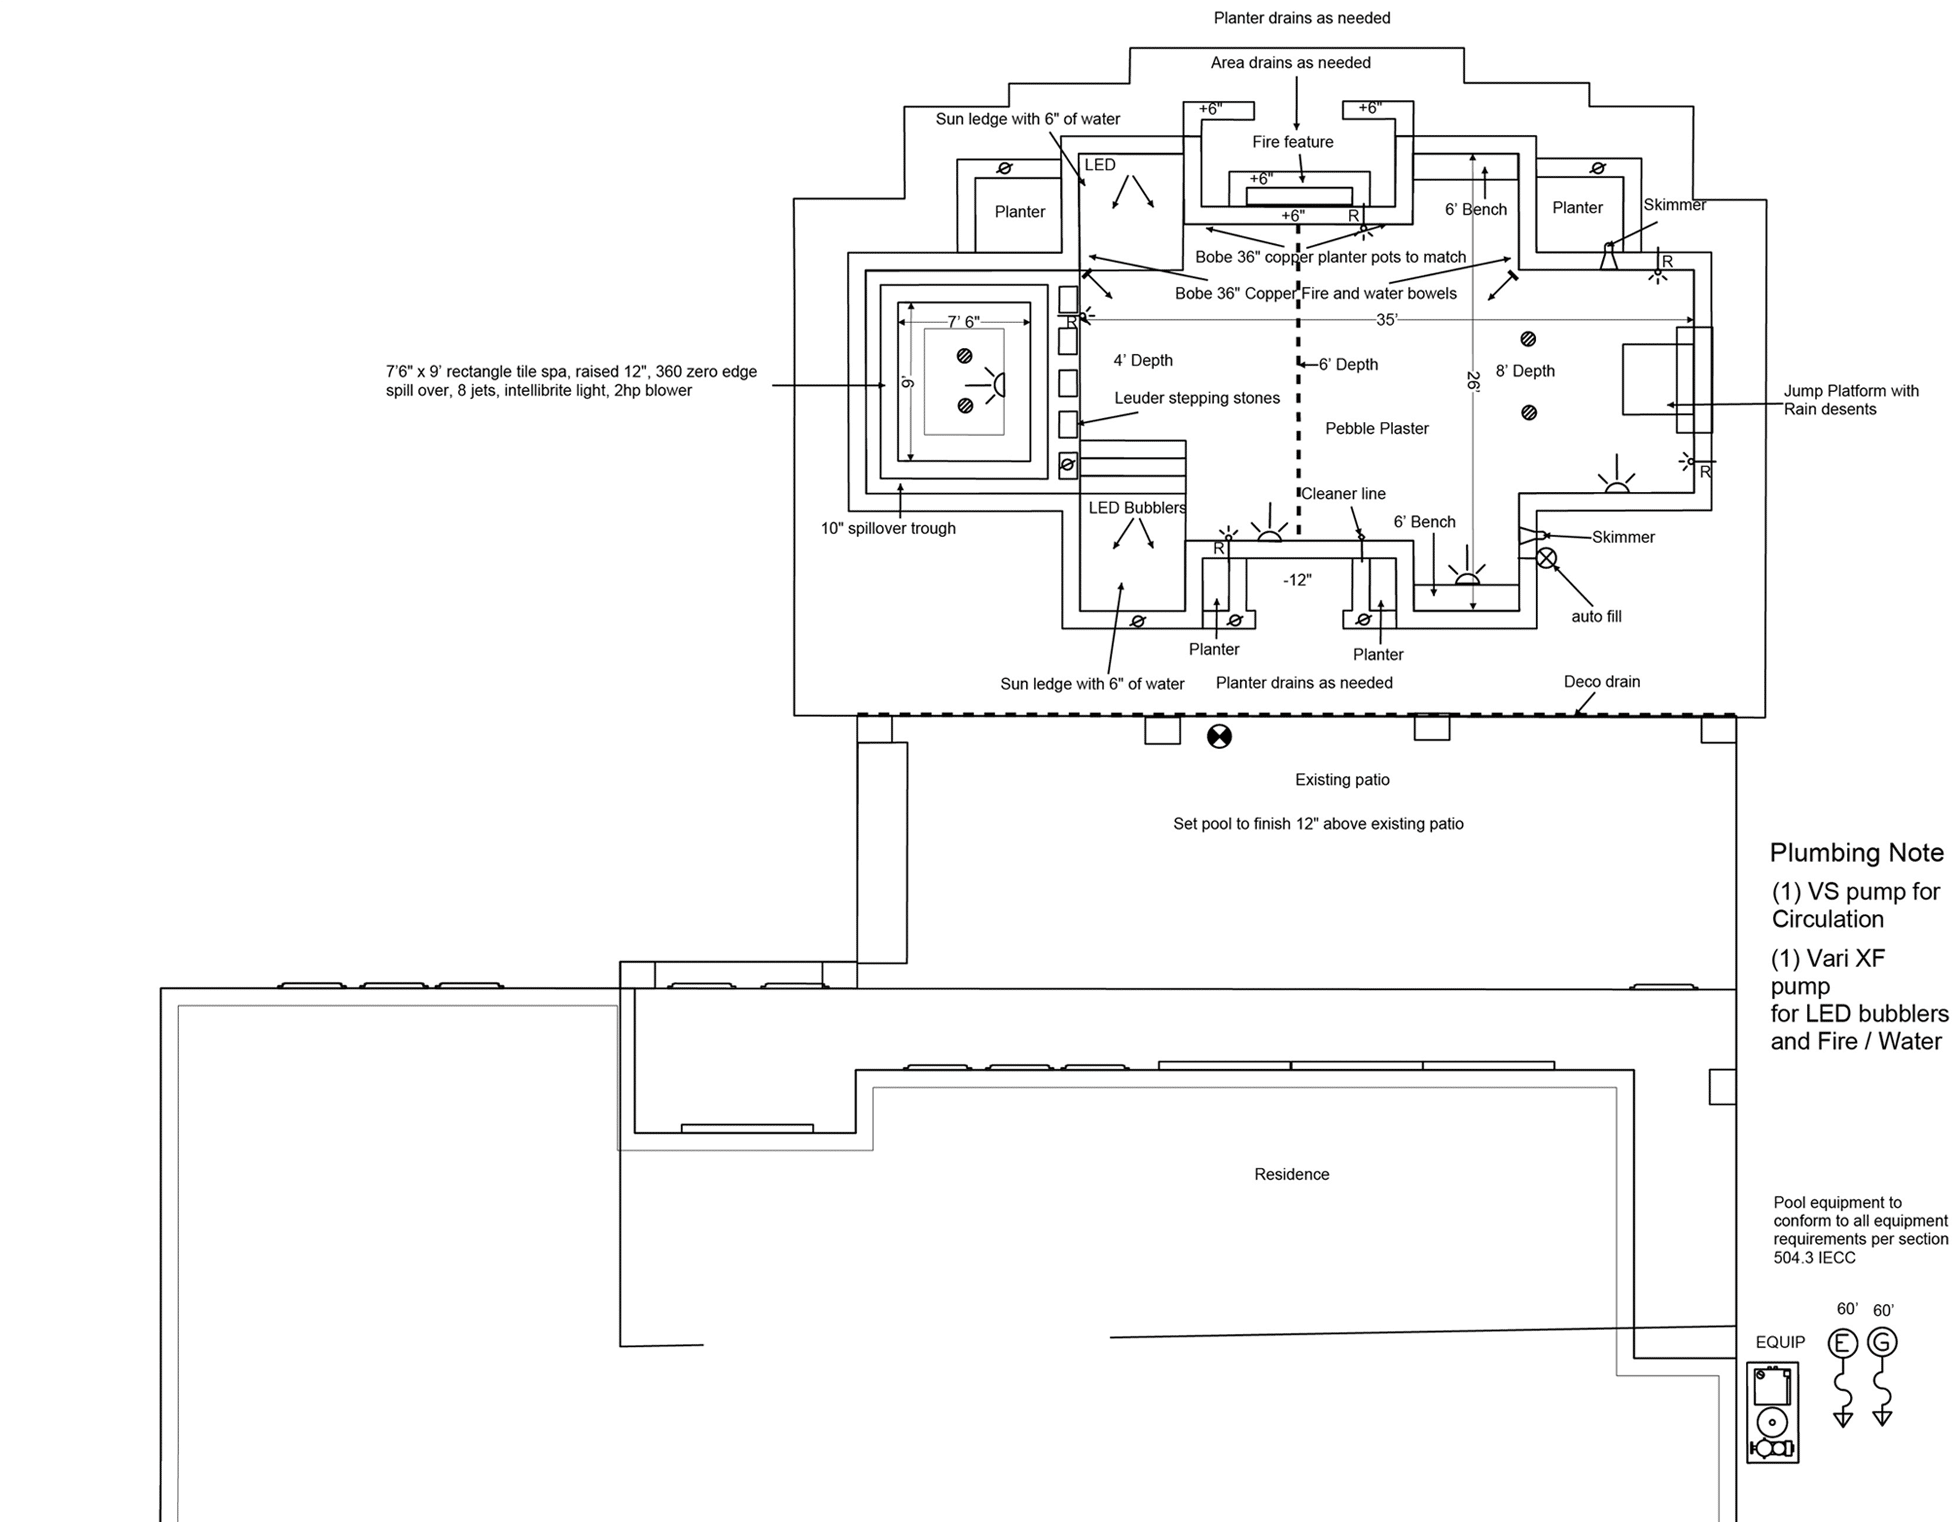 Overhead view of a swimming pool plan drawing.